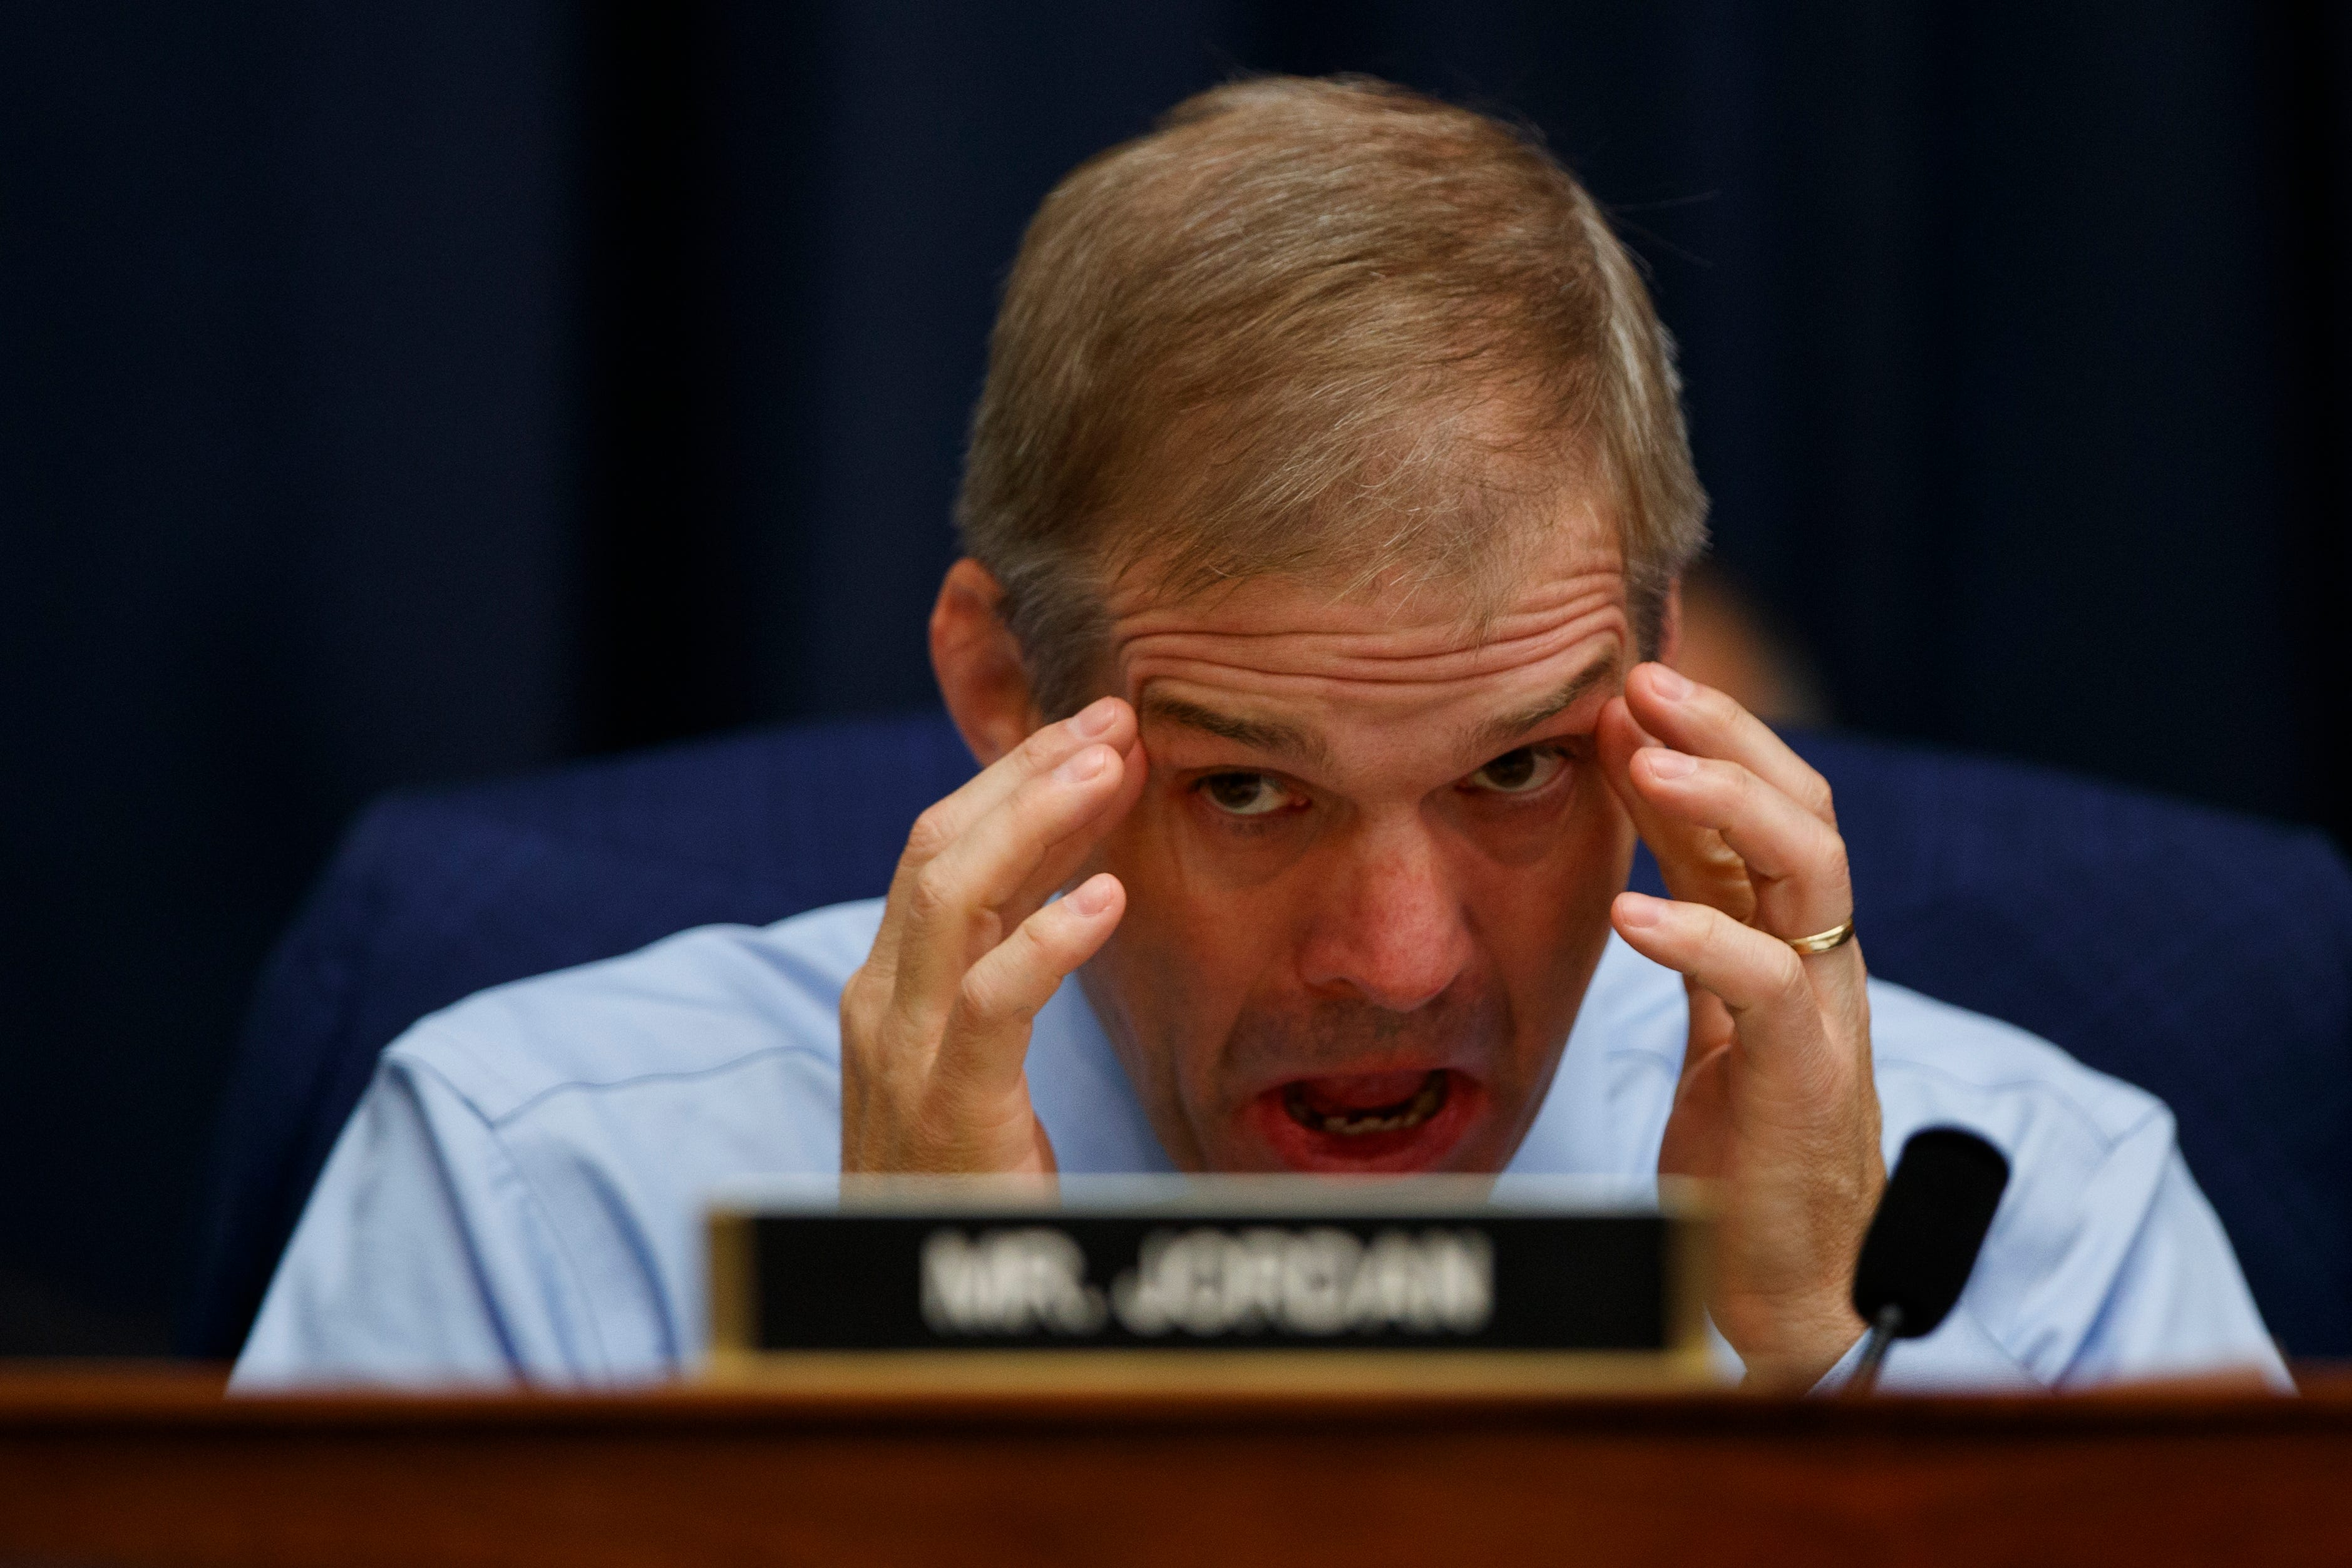 Retired Ohio State coach asked former wrestlers to support Rep. Jim Jordan